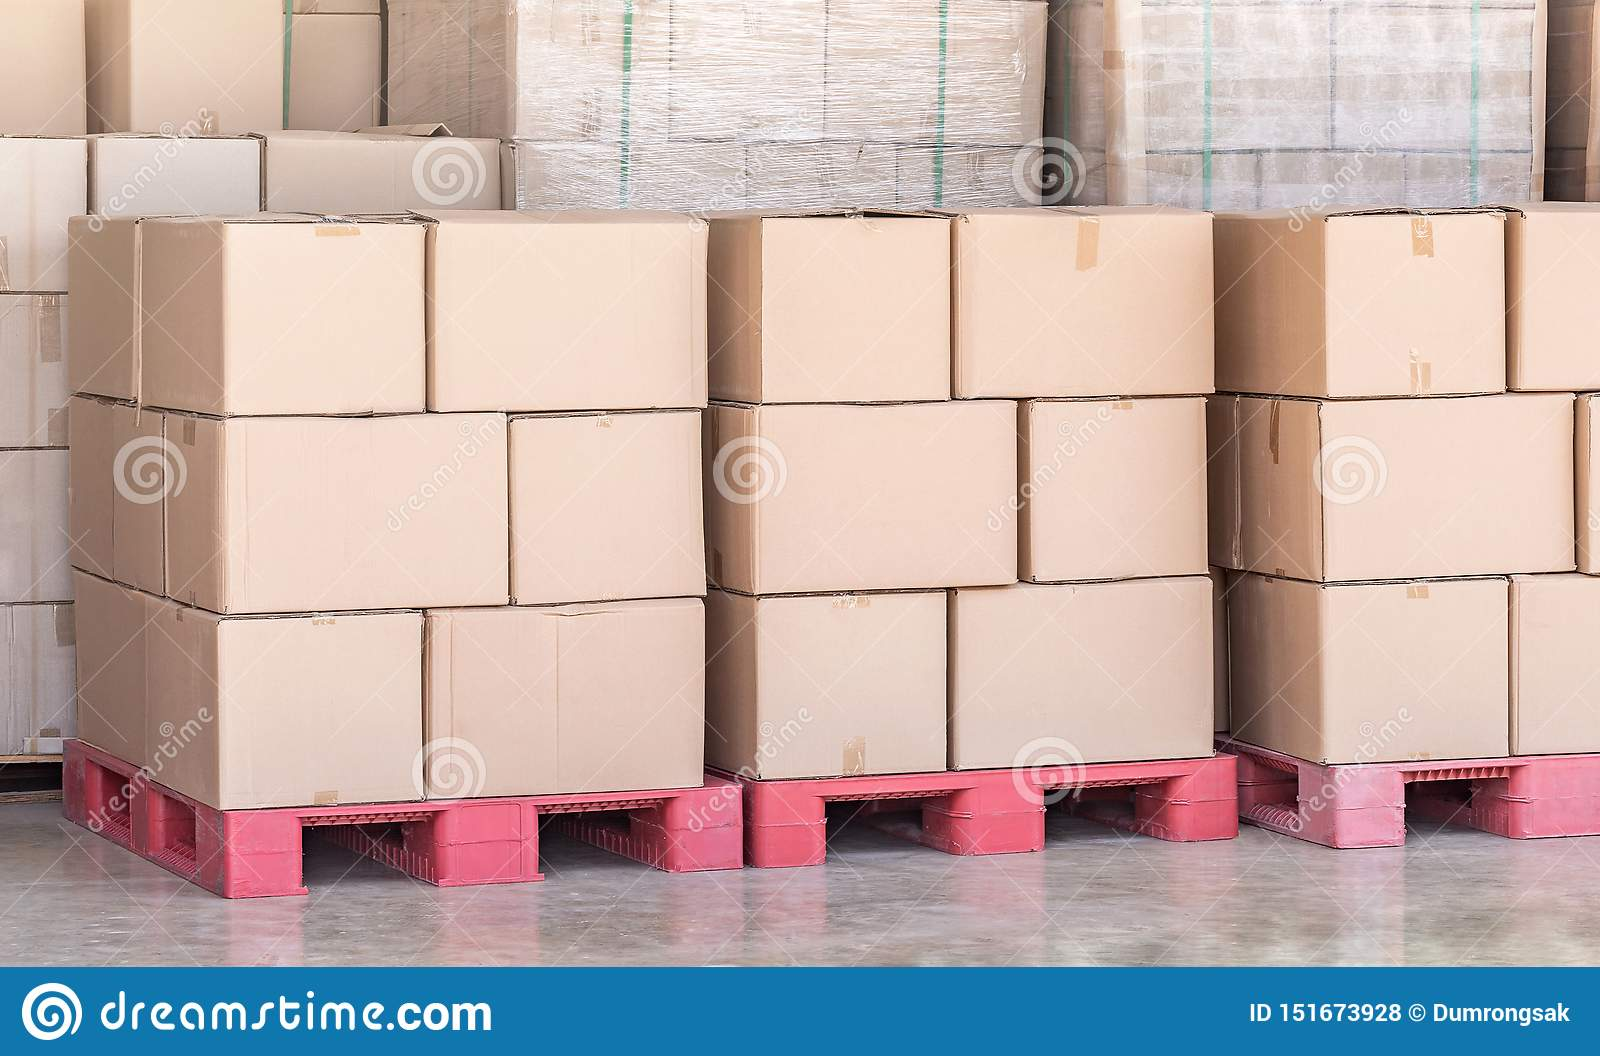 Stack of goods carton boxes on red pallet at logistics warehouse